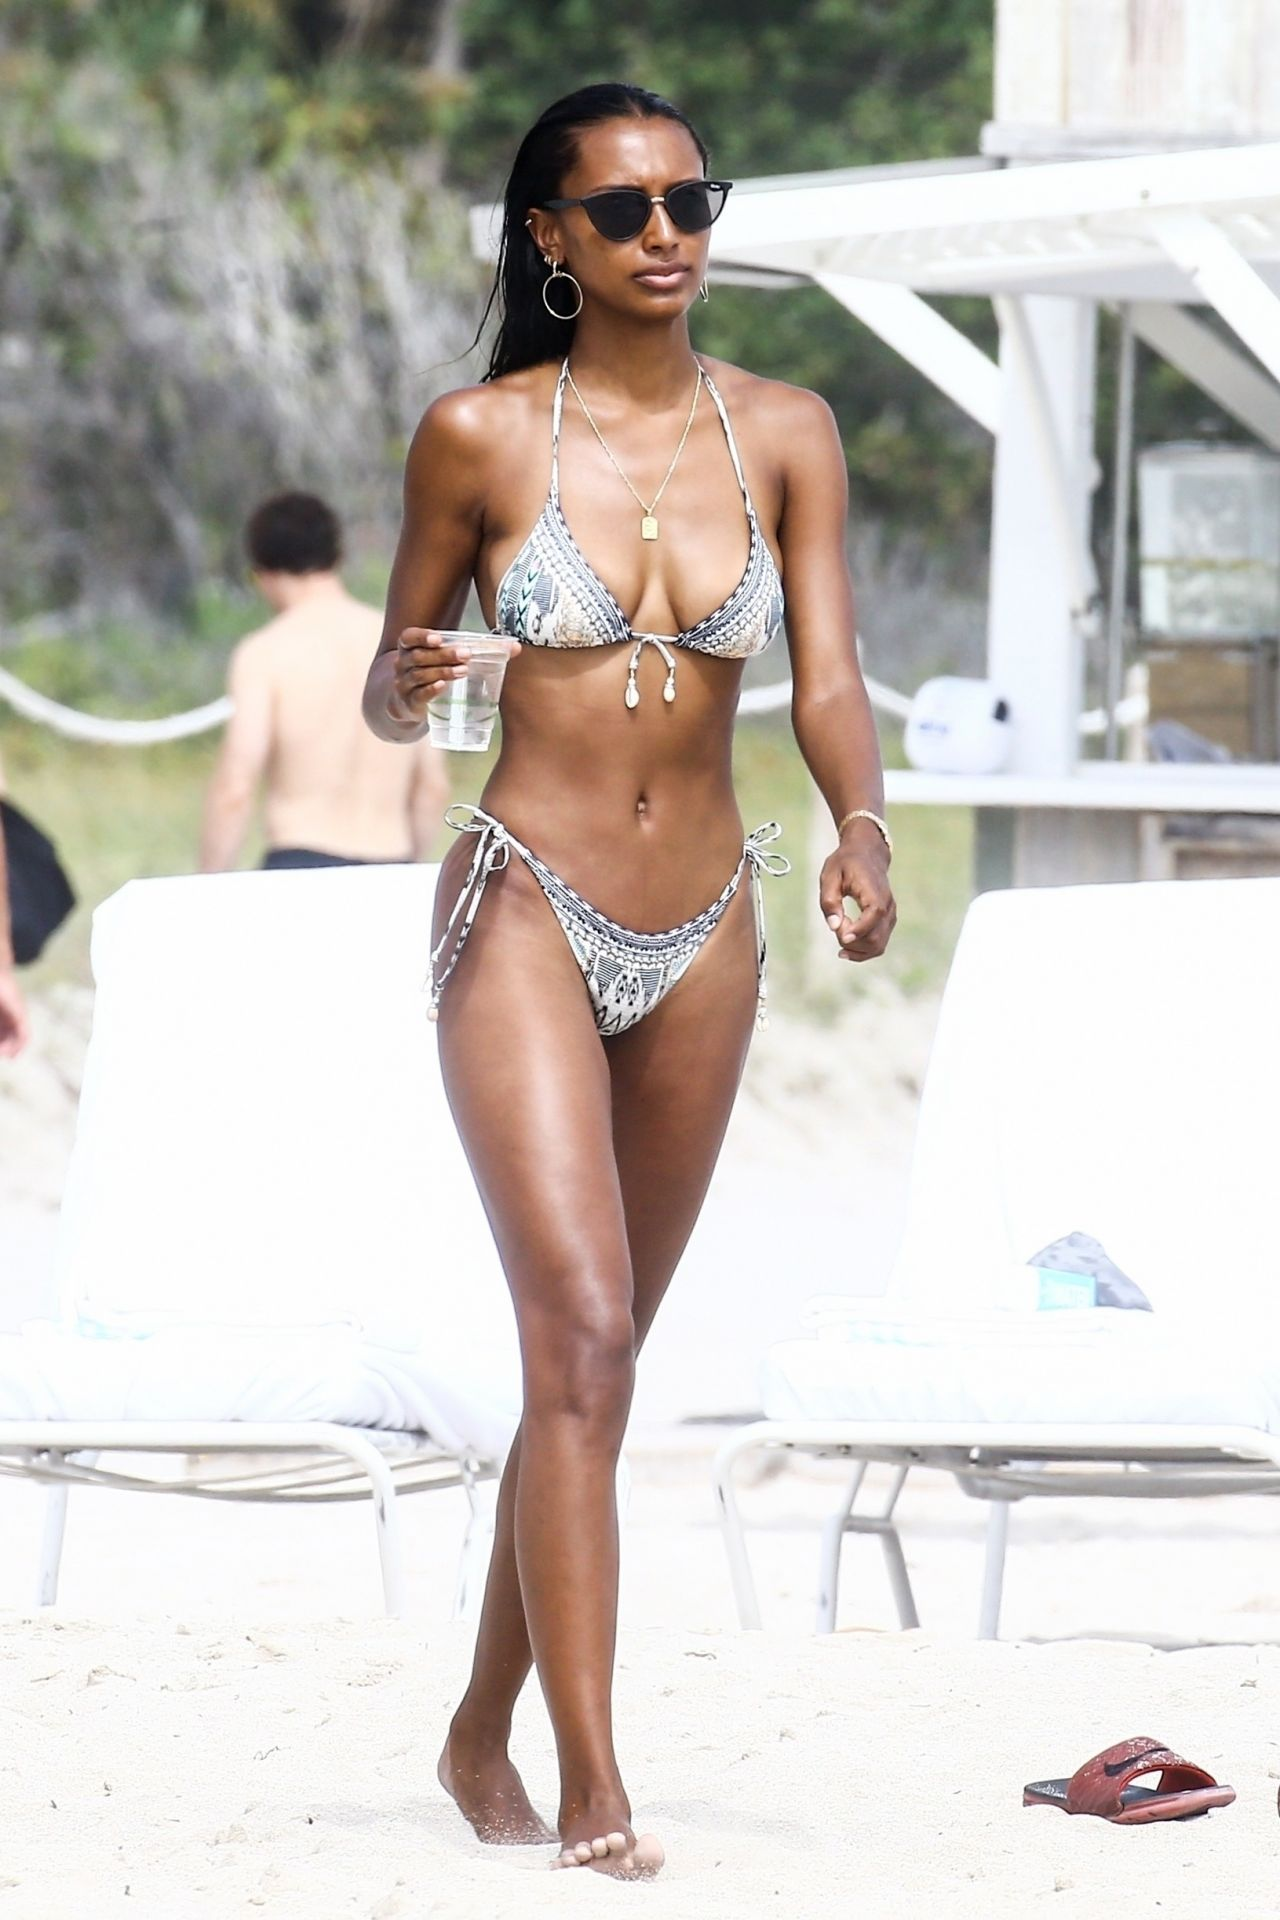 Bikini Jasmine Tookes nudes (31 foto and video), Topless, Sideboobs, Feet, bra 2015